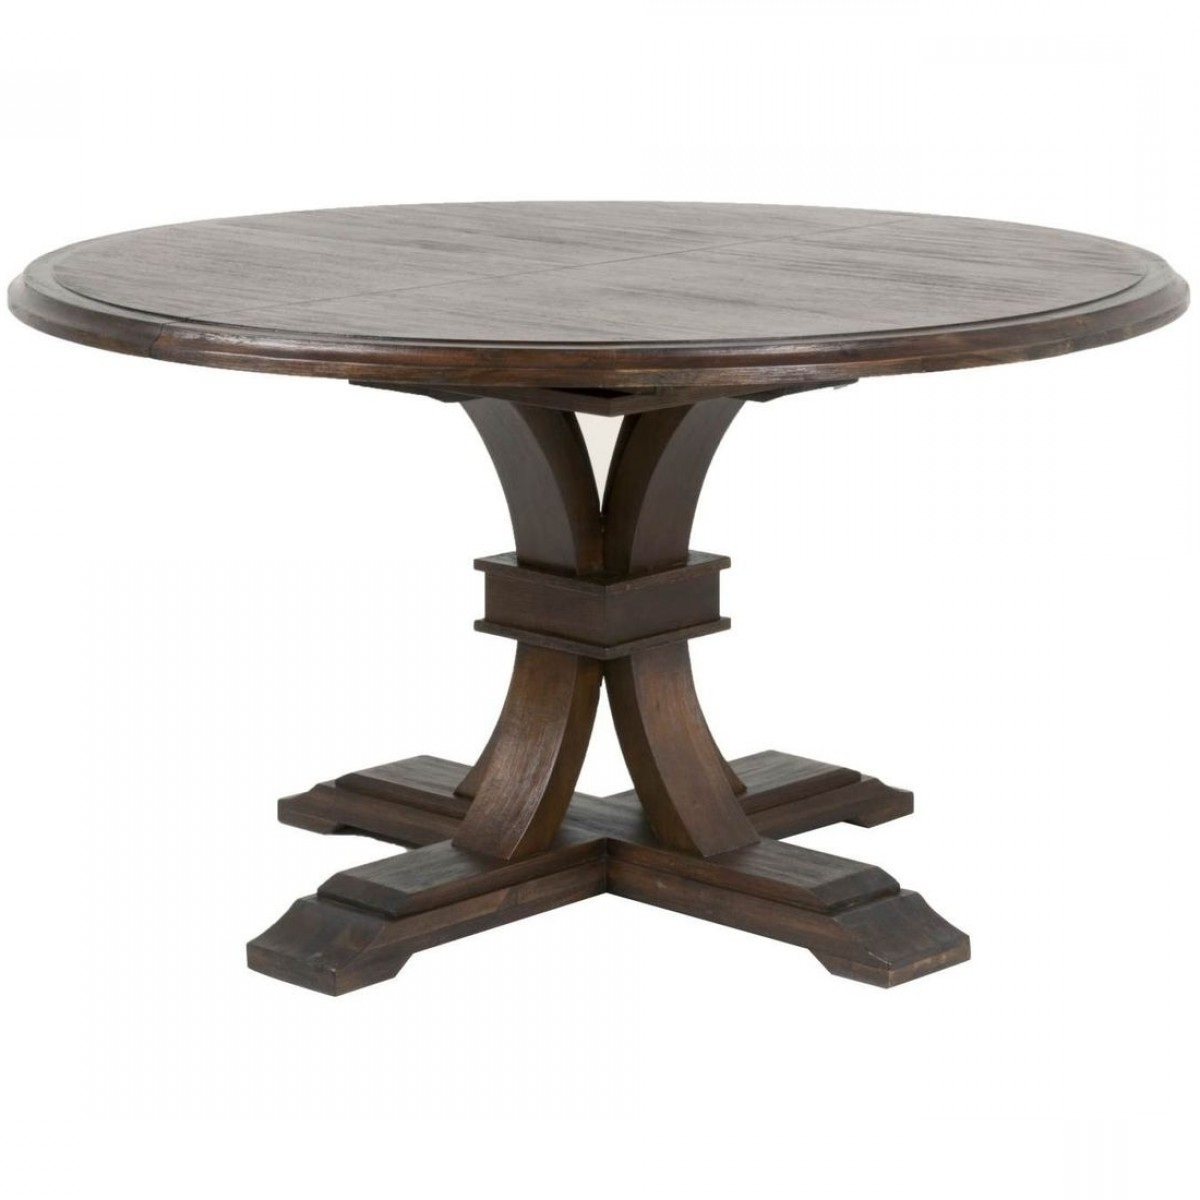 Recent Jaxon Grey Round Extension Dining Tables within Orient Express Traditions Devon Round Extension Dining Table For